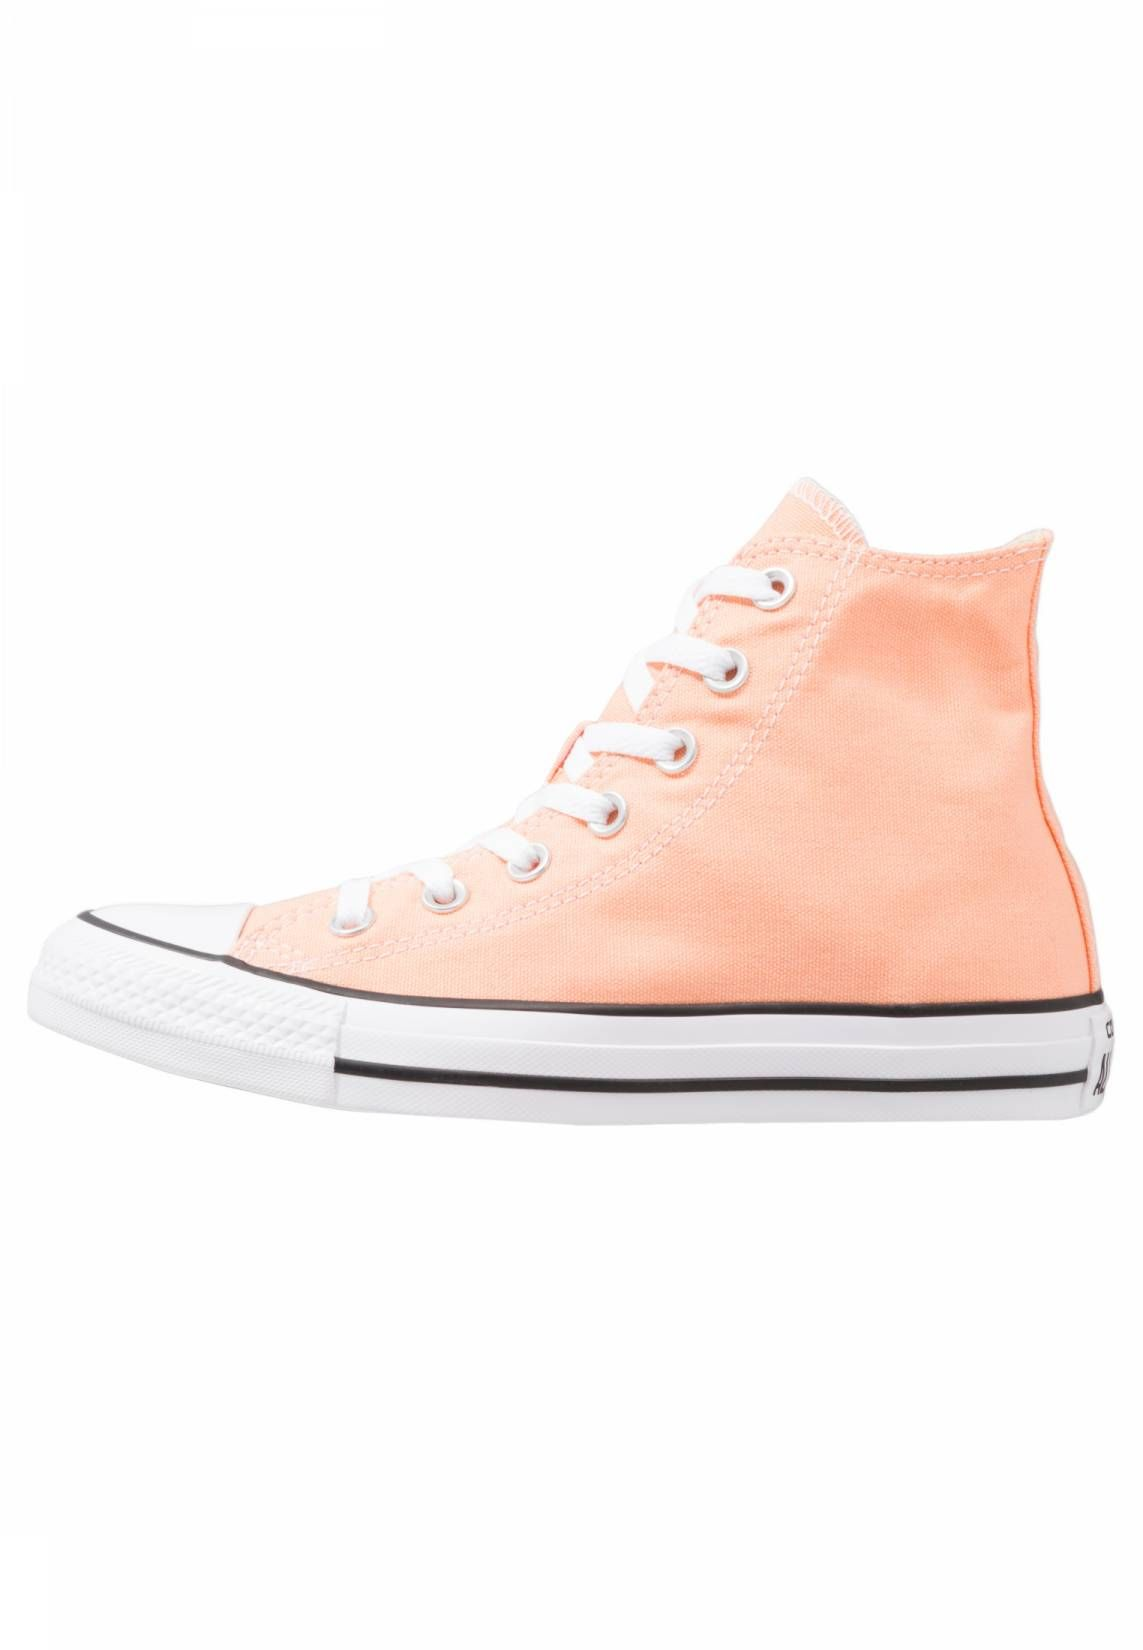 Converse. CHUCK TAYLOR ALL STAR HI High top trainers